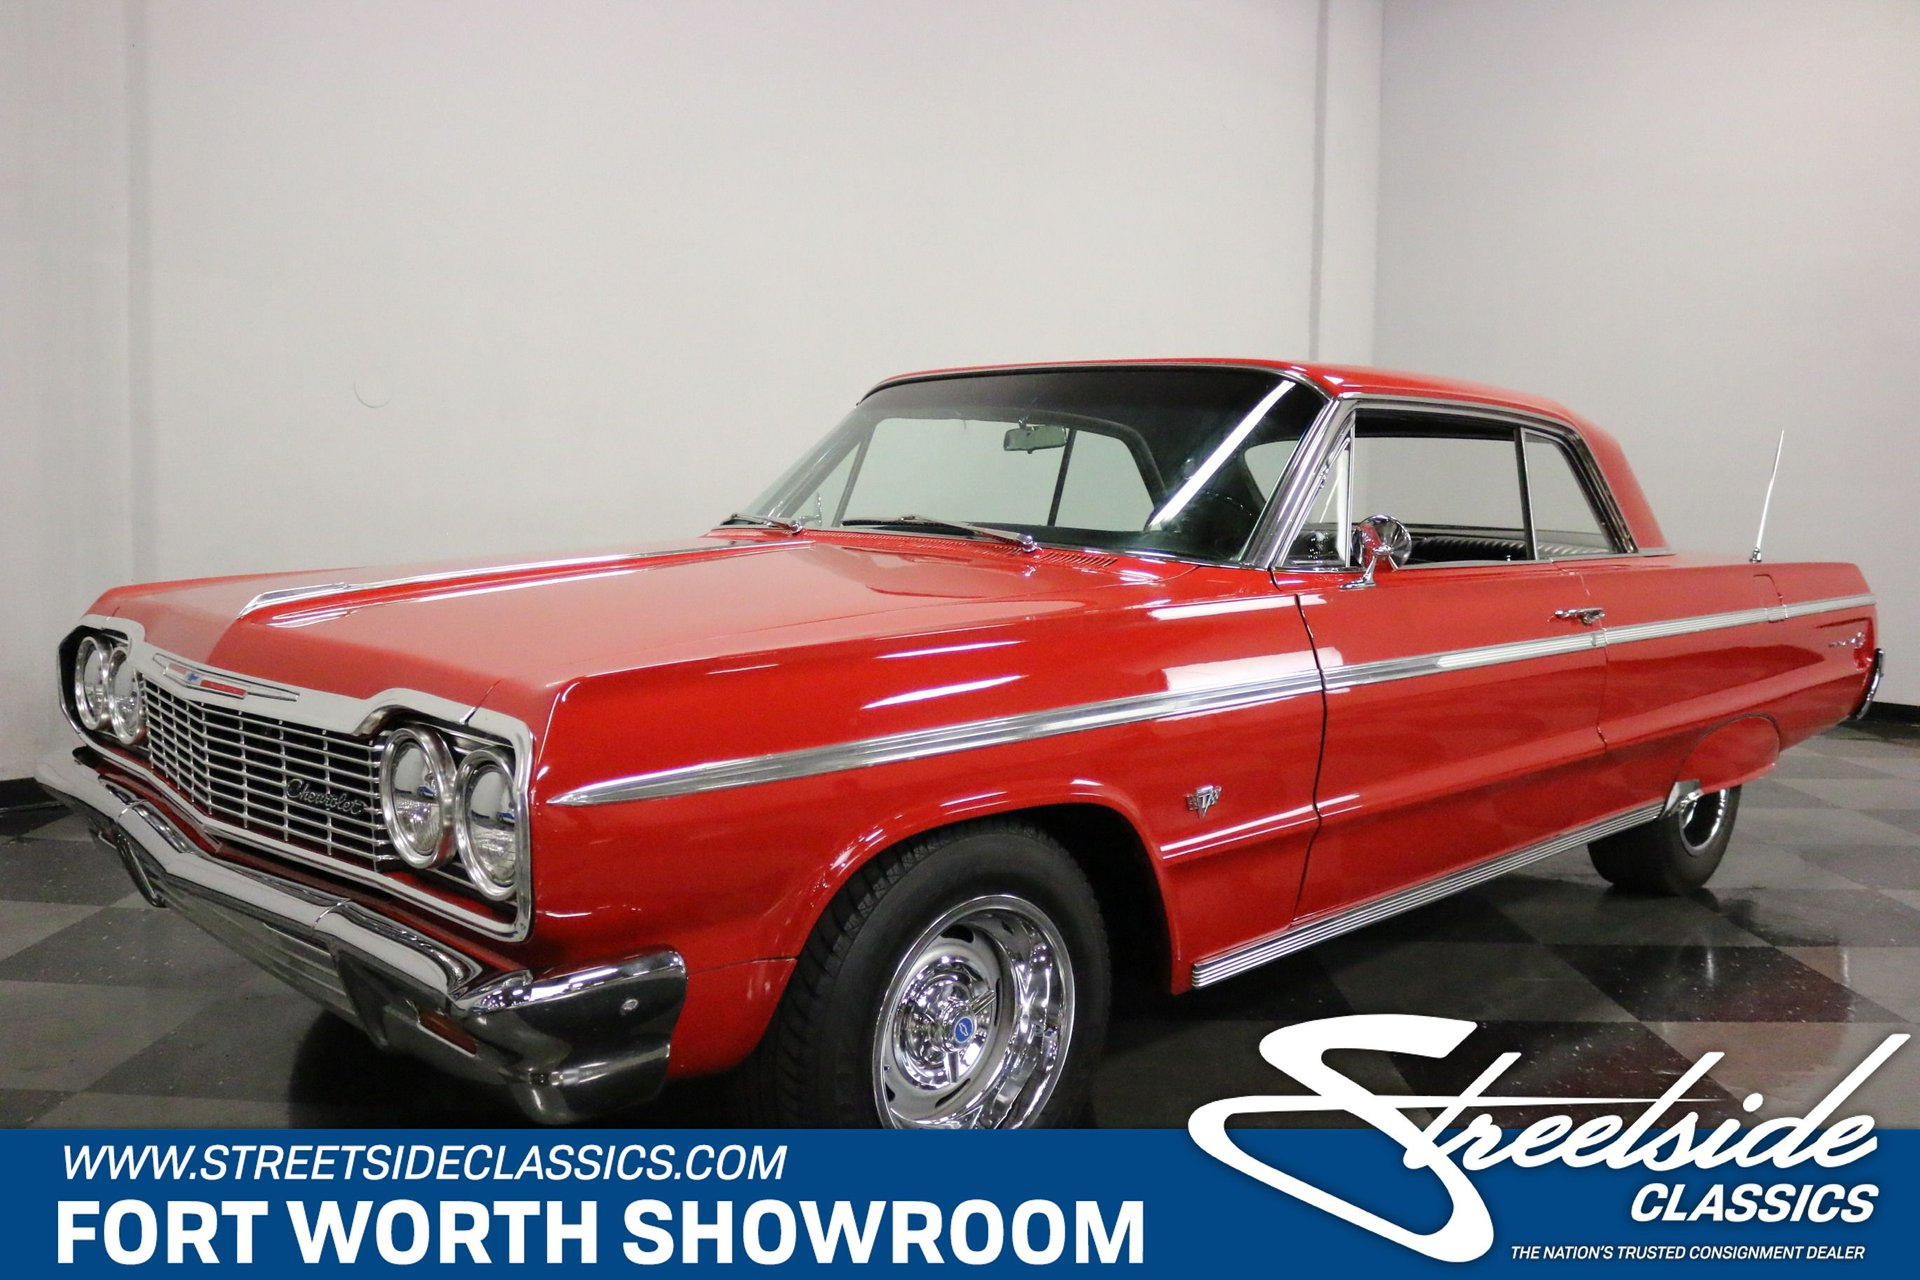 1964 Chevrolet Impala Ss 409 For Sale 82513 Mcg 1966 Chevy Convertible